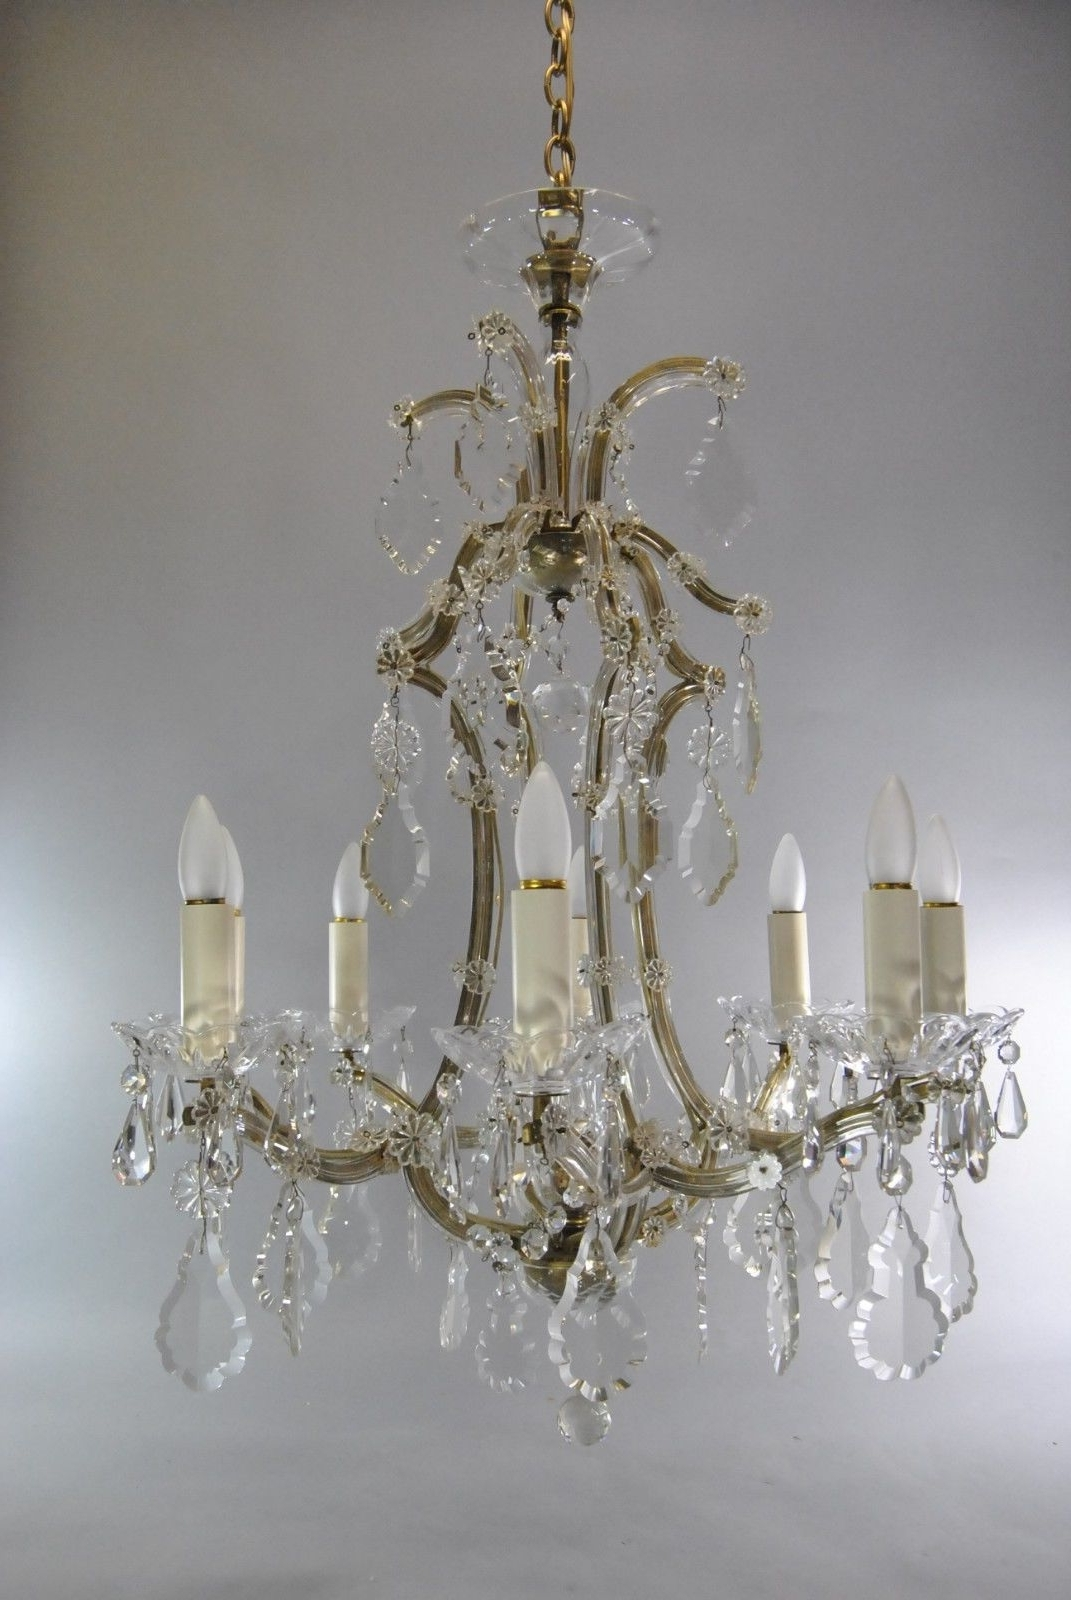 Chandelier: Stunning French Crystal Chandelier French Empire Intended For Newest French Crystal Chandeliers (View 3 of 20)